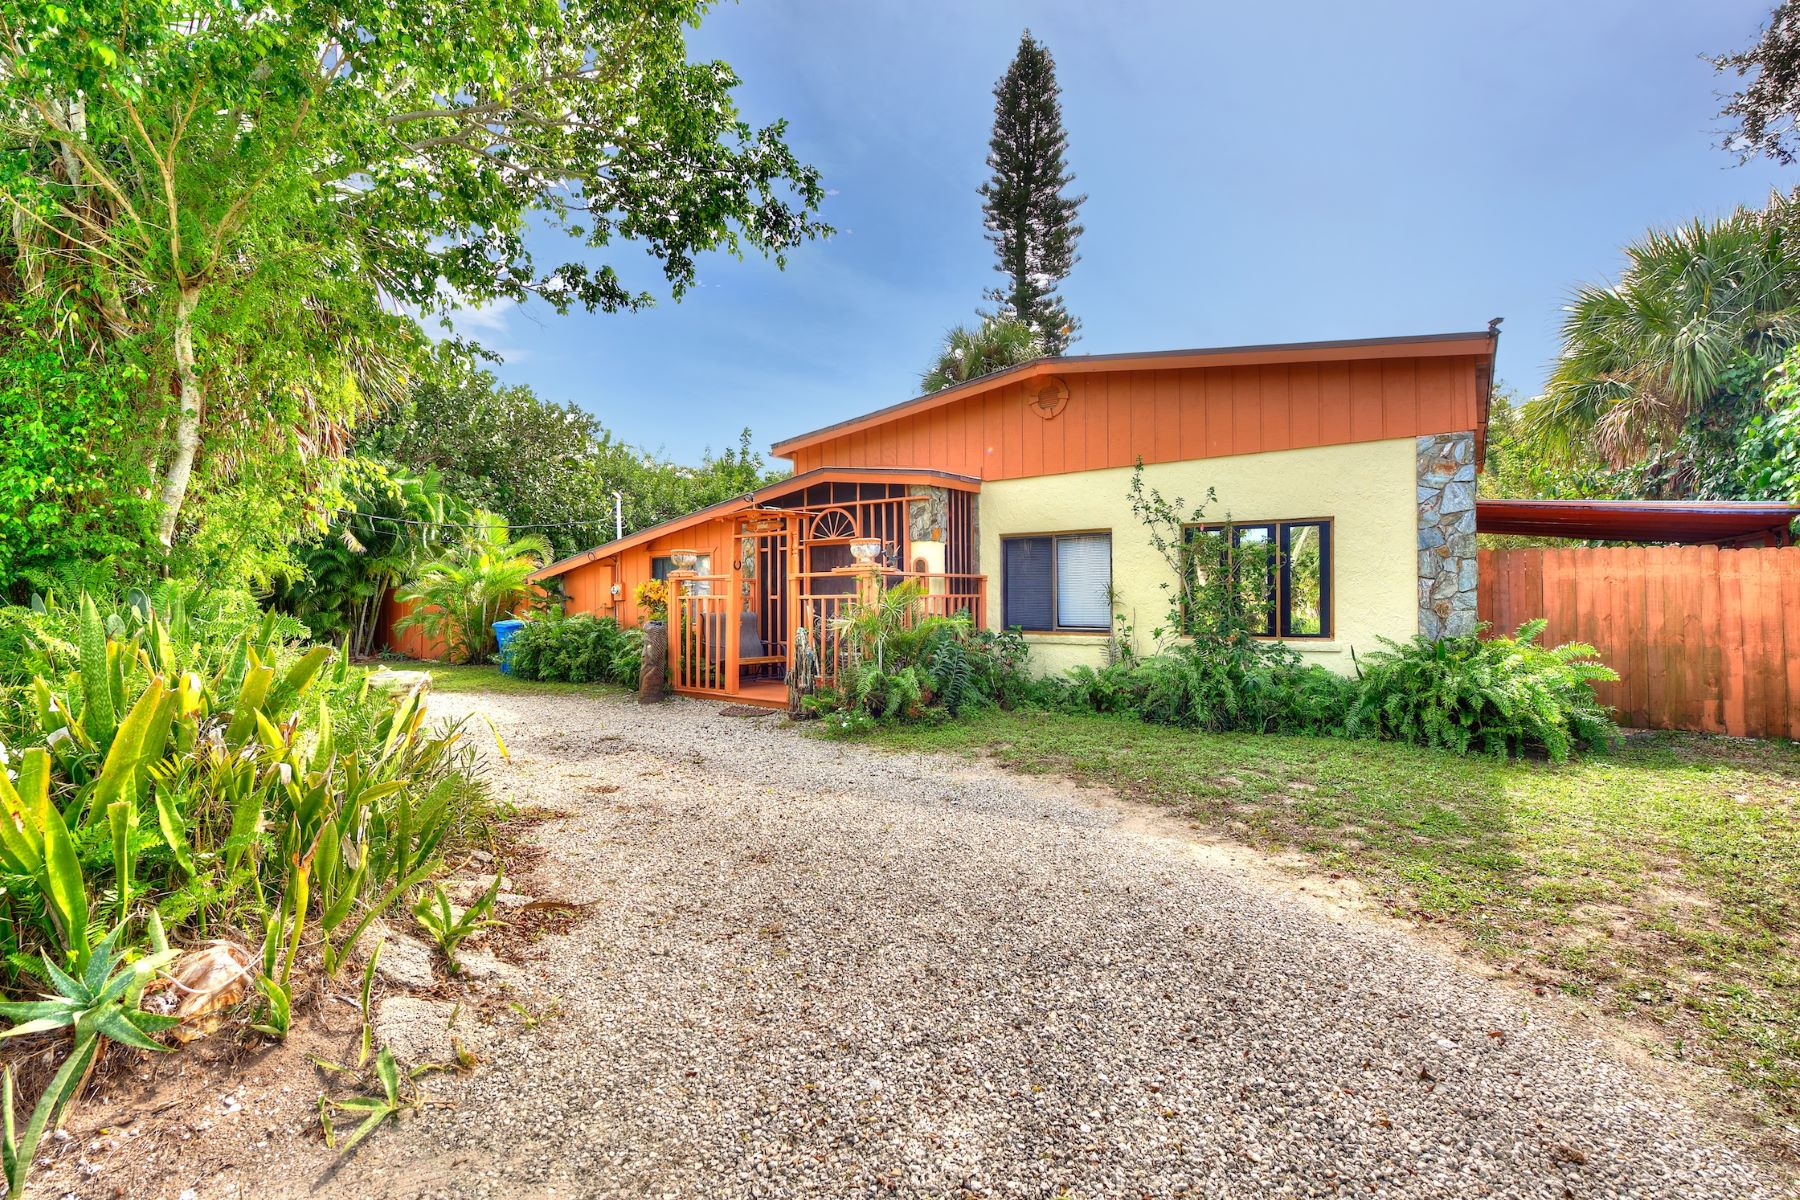 Additional photo for property listing at Vintage Home Along Desirable Sunset Boulevard 523 Sunset Boulevard NULL Melbourne Beach, Florida 32951 United States